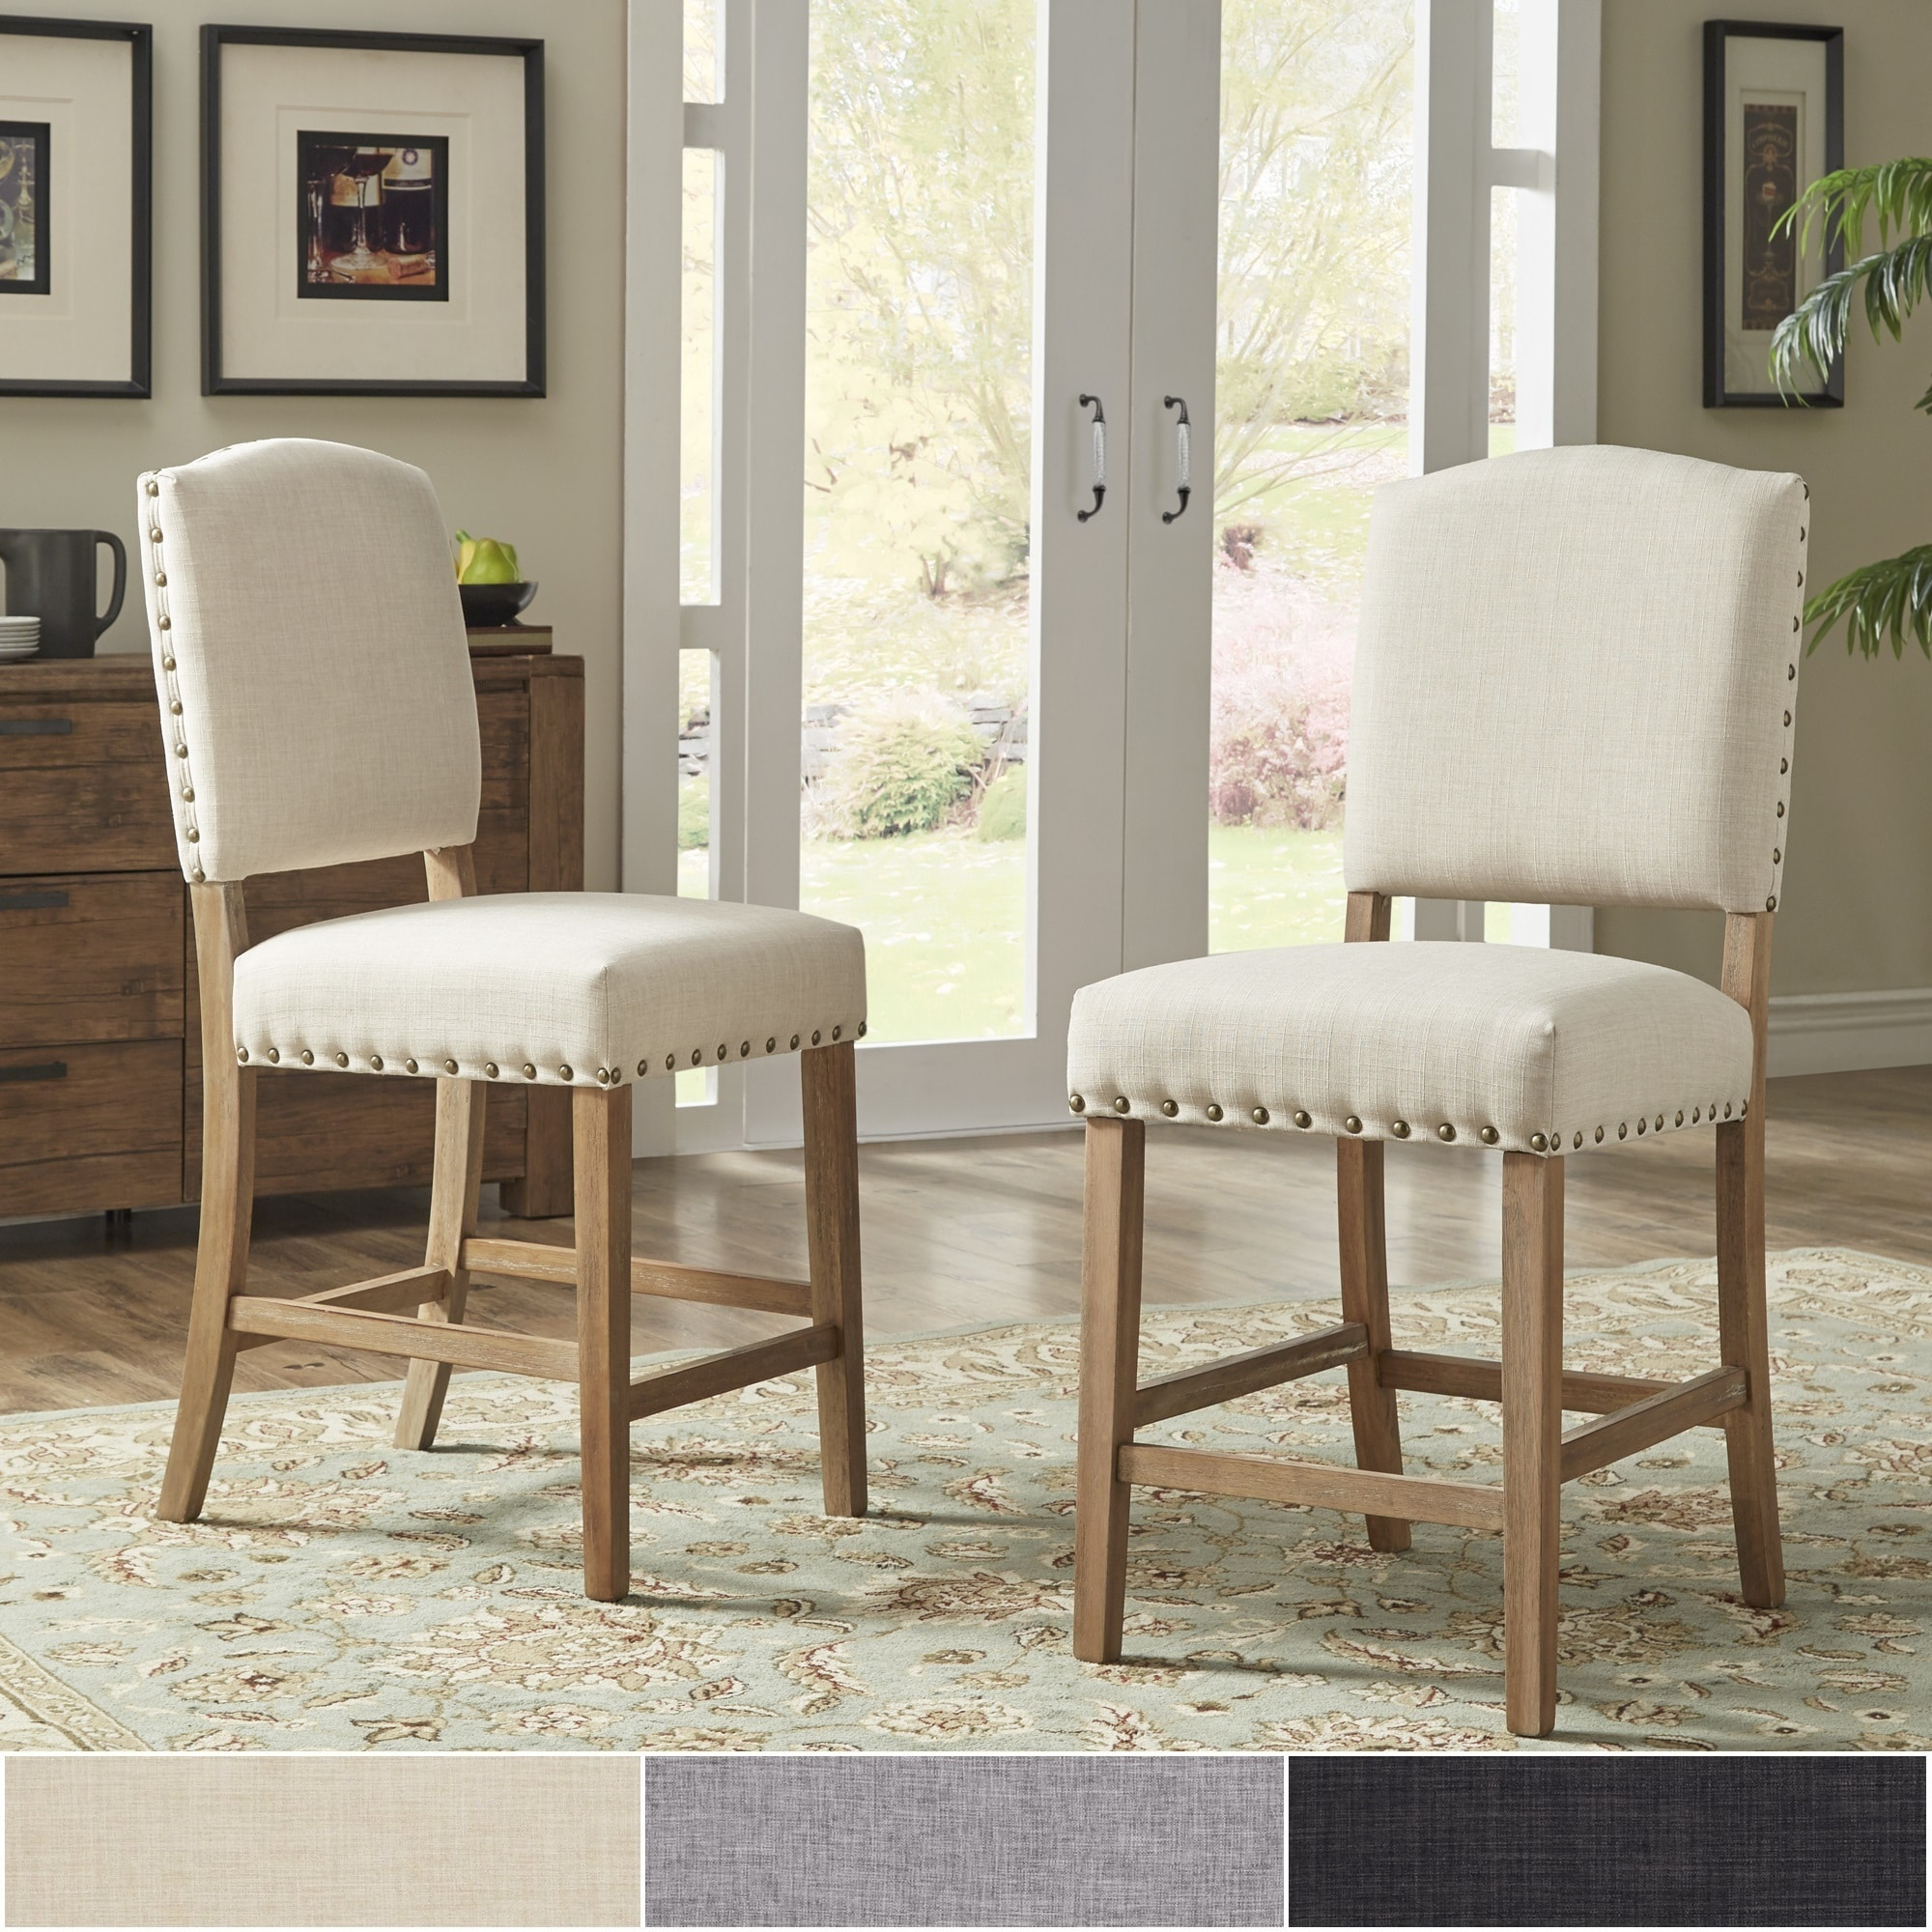 Benchwright Premium Nailhead Upholstered Counter Height Intended For 2018 Benchwright Counter Height Tables (View 13 of 25)